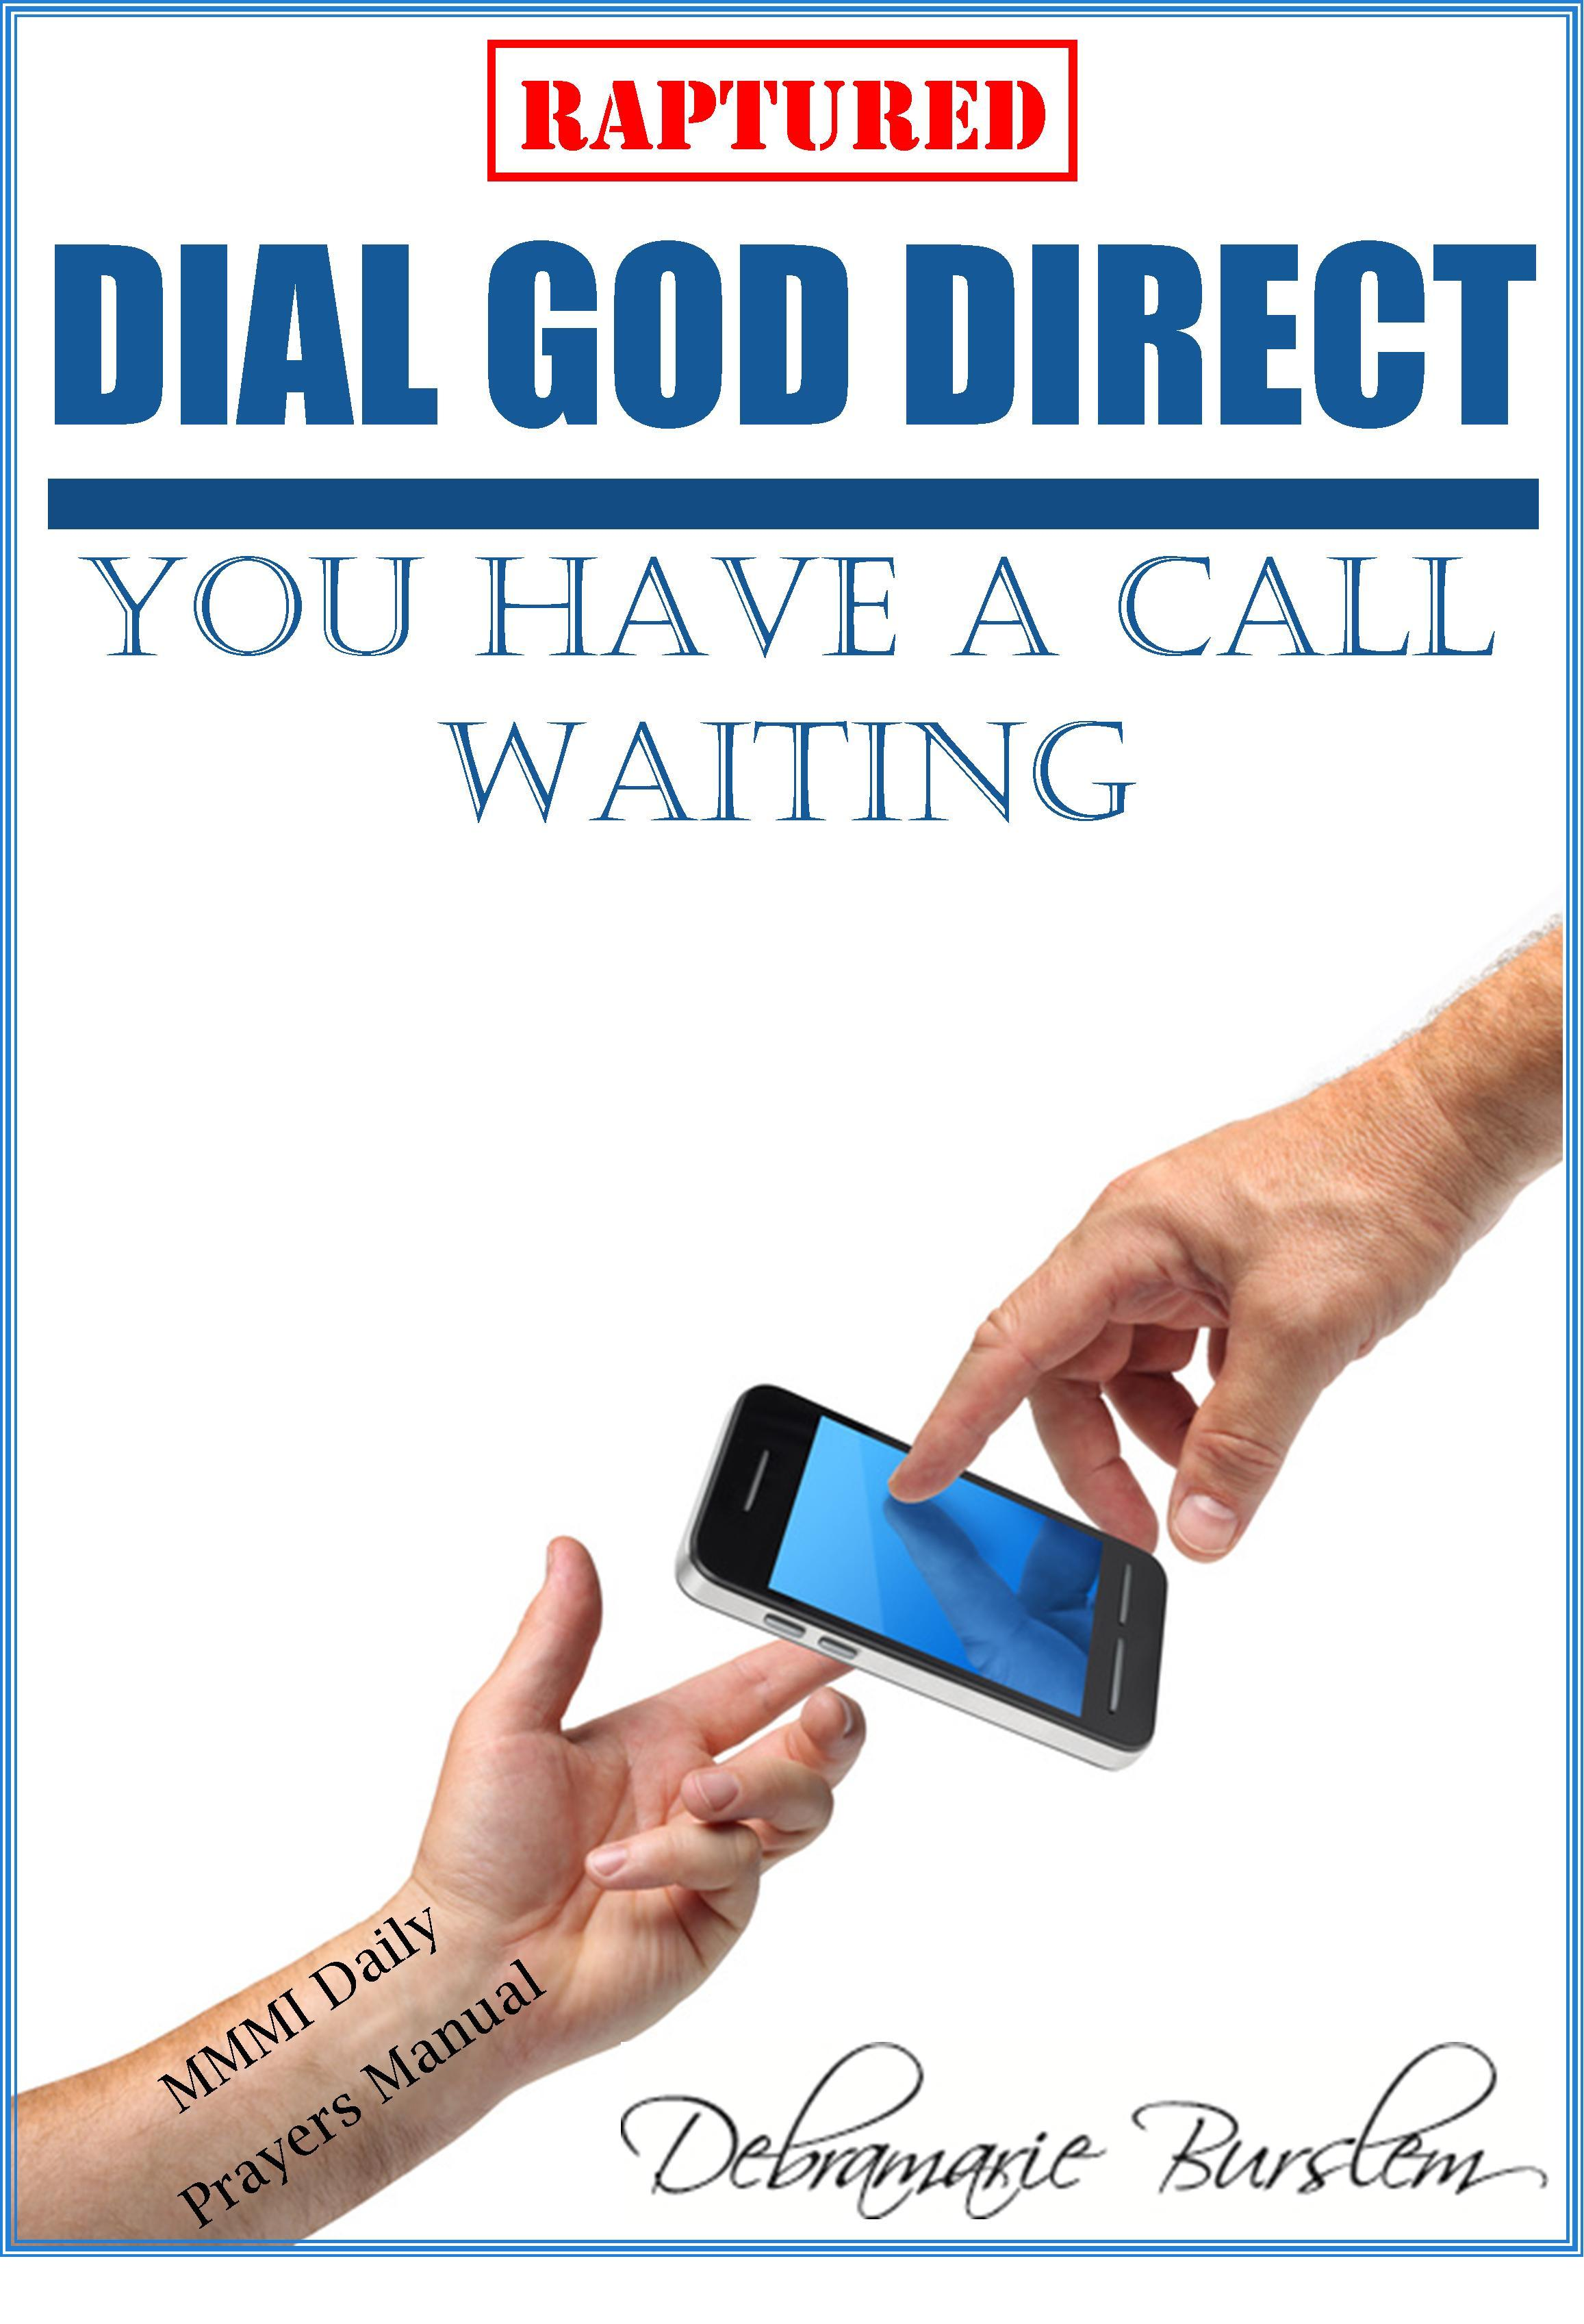 Dial God Direct - MMMI Prayer Manual EBMMMP